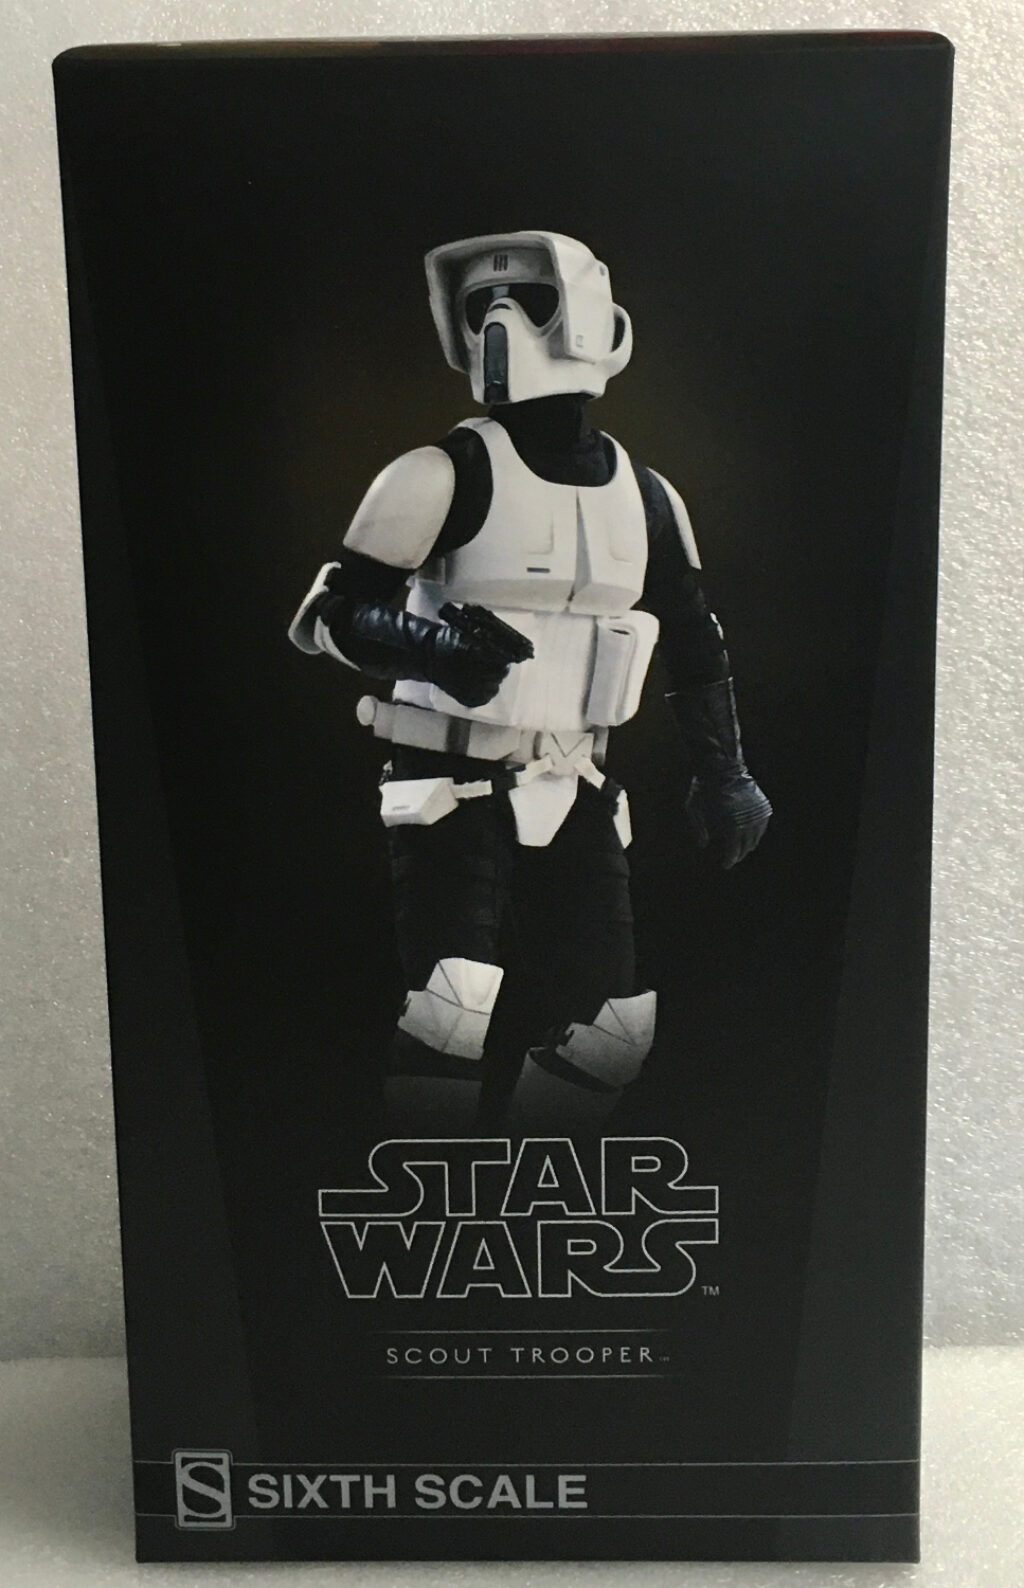 sideshow star wars scout trooper 1:6 scale figure 1